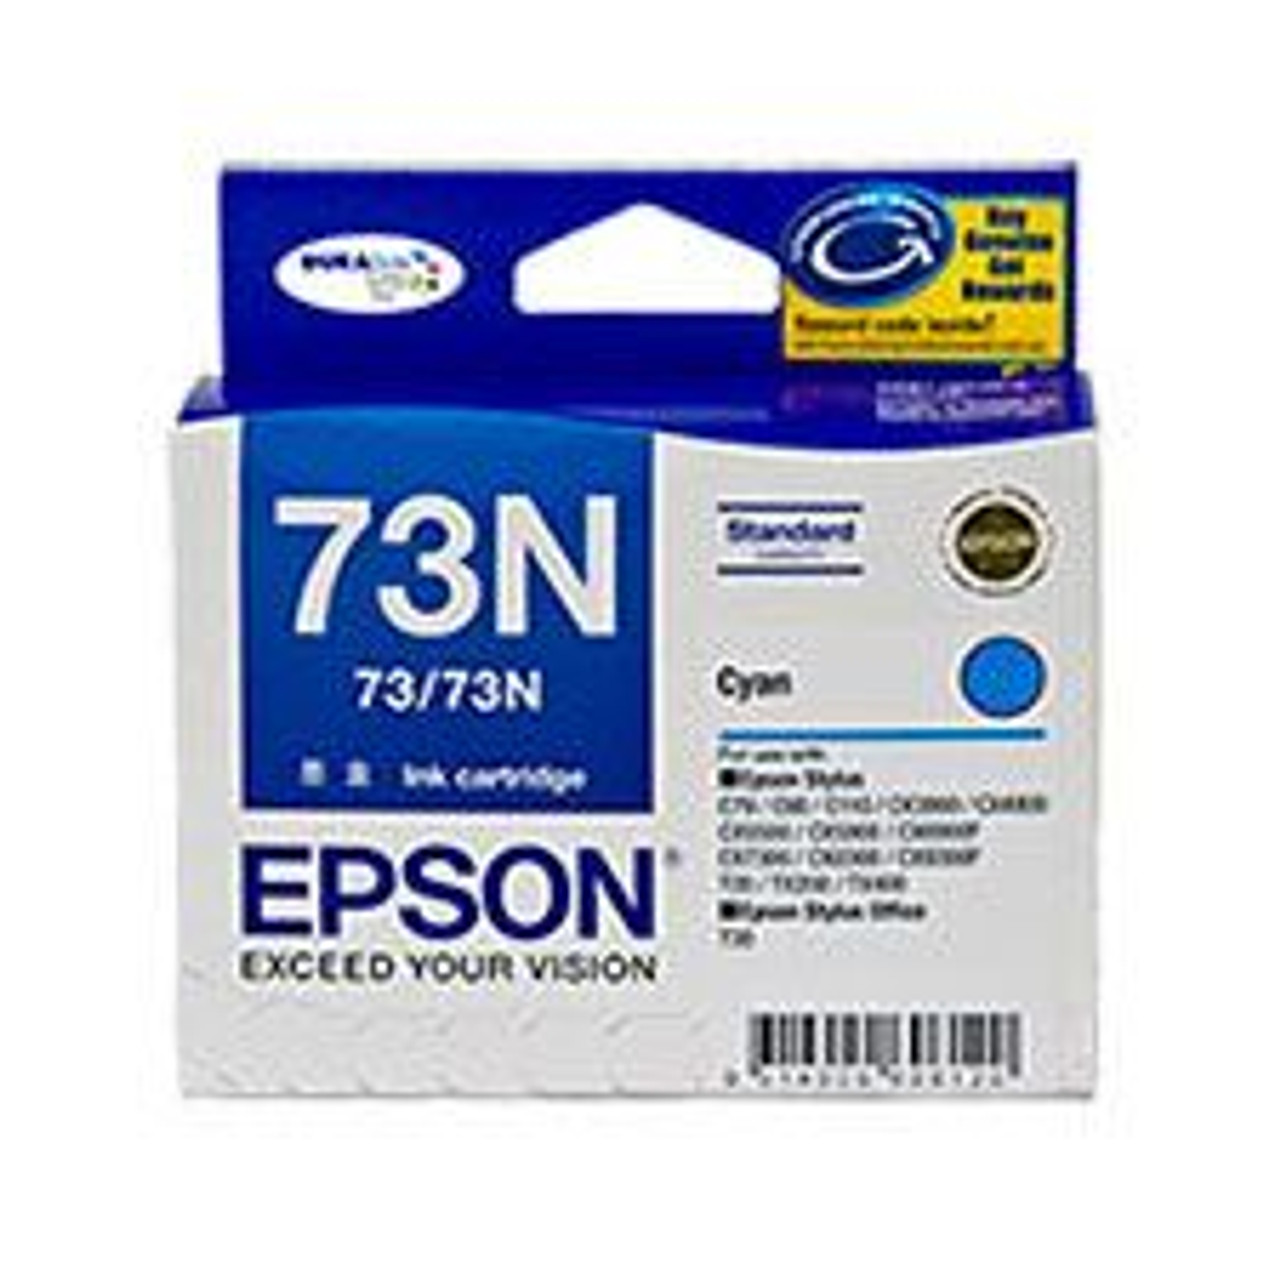 Image for Epson 73/73N Cyan Ink Cartridge (T105292) CX Computer Superstore